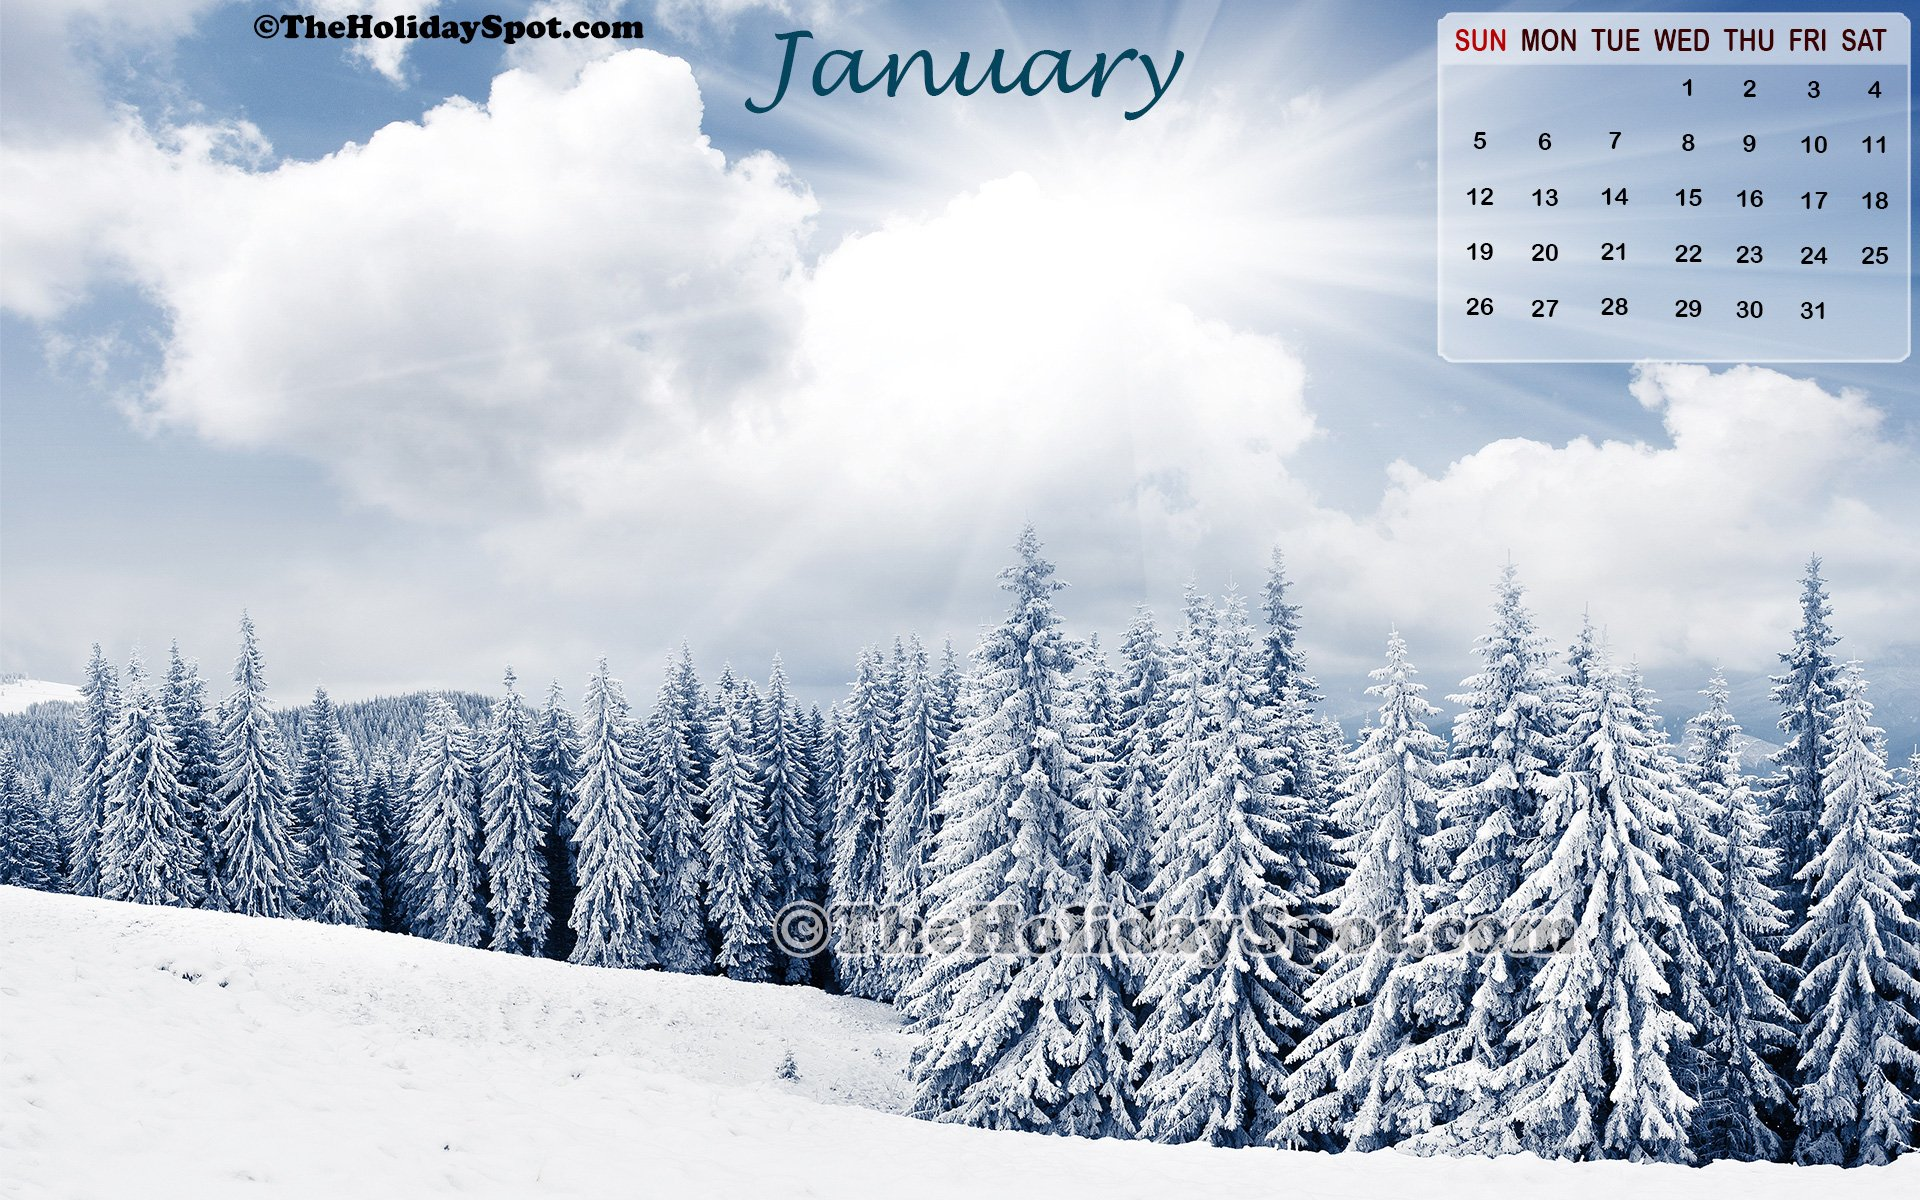 high definition snow clad winter calendar wallpaper for January 2014 1920x1200